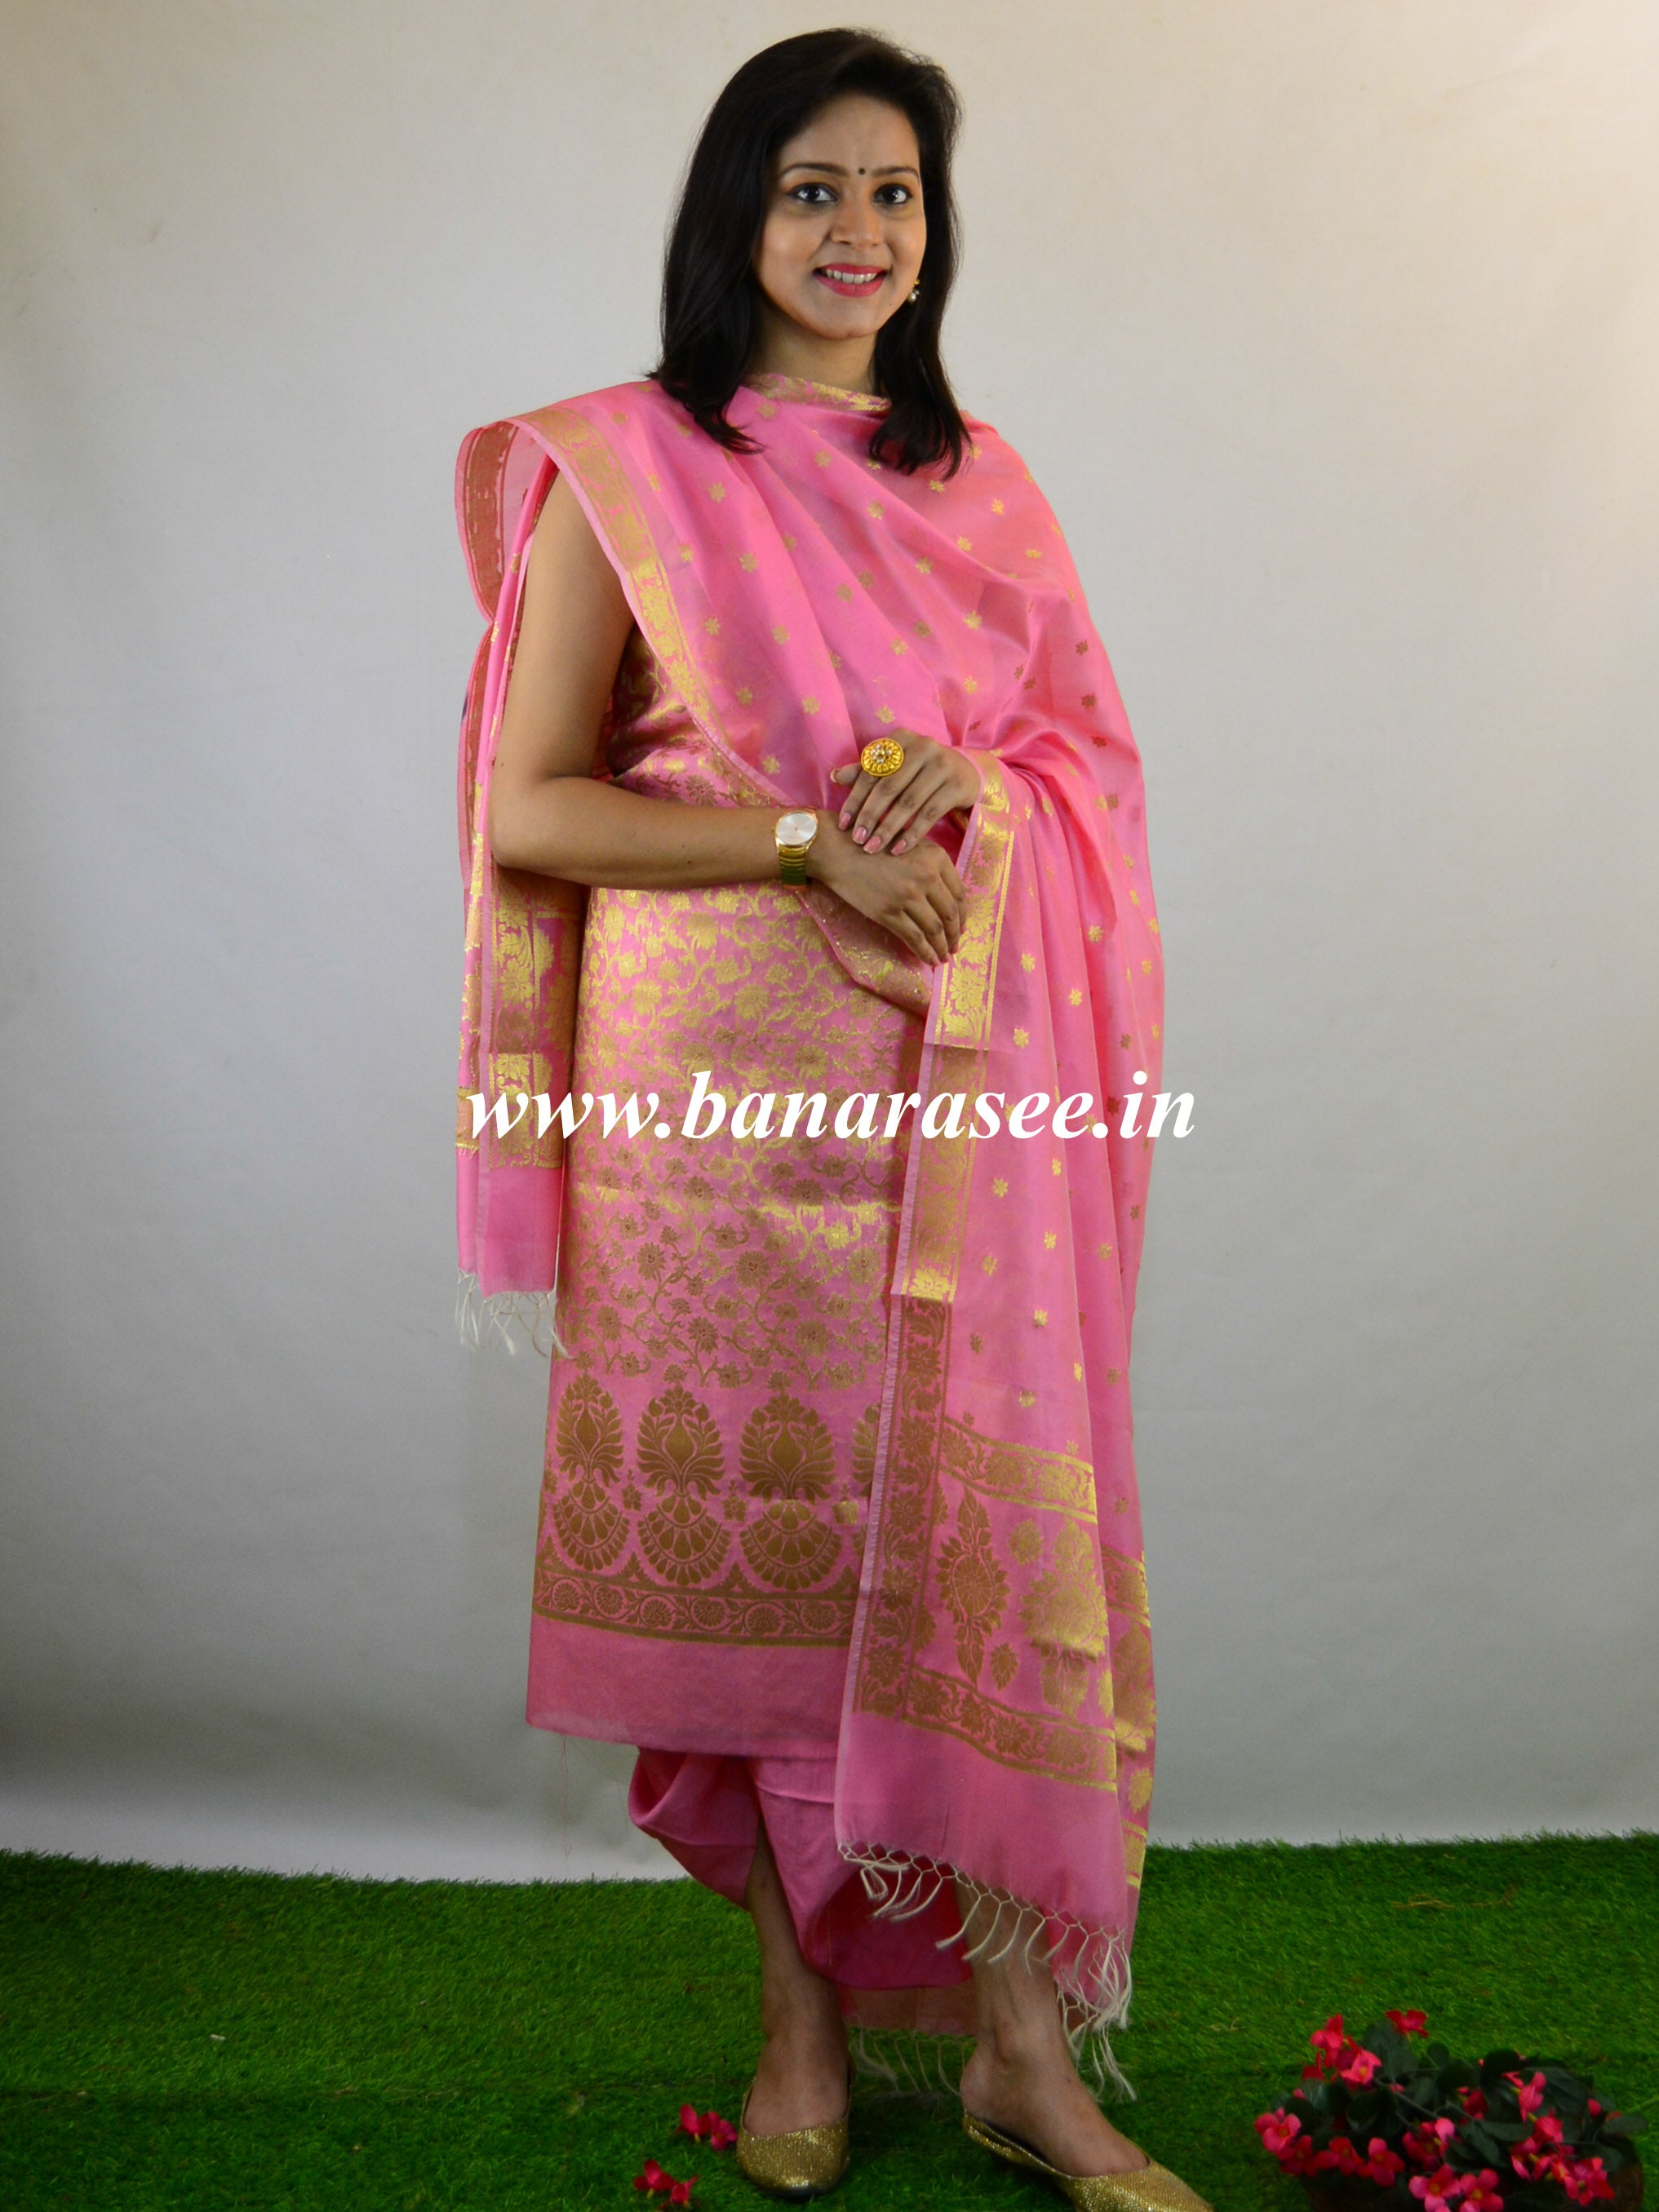 Banarasee Salwar Kameez Cotton Silk Gold Zari Buti Woven Fabric-Pink